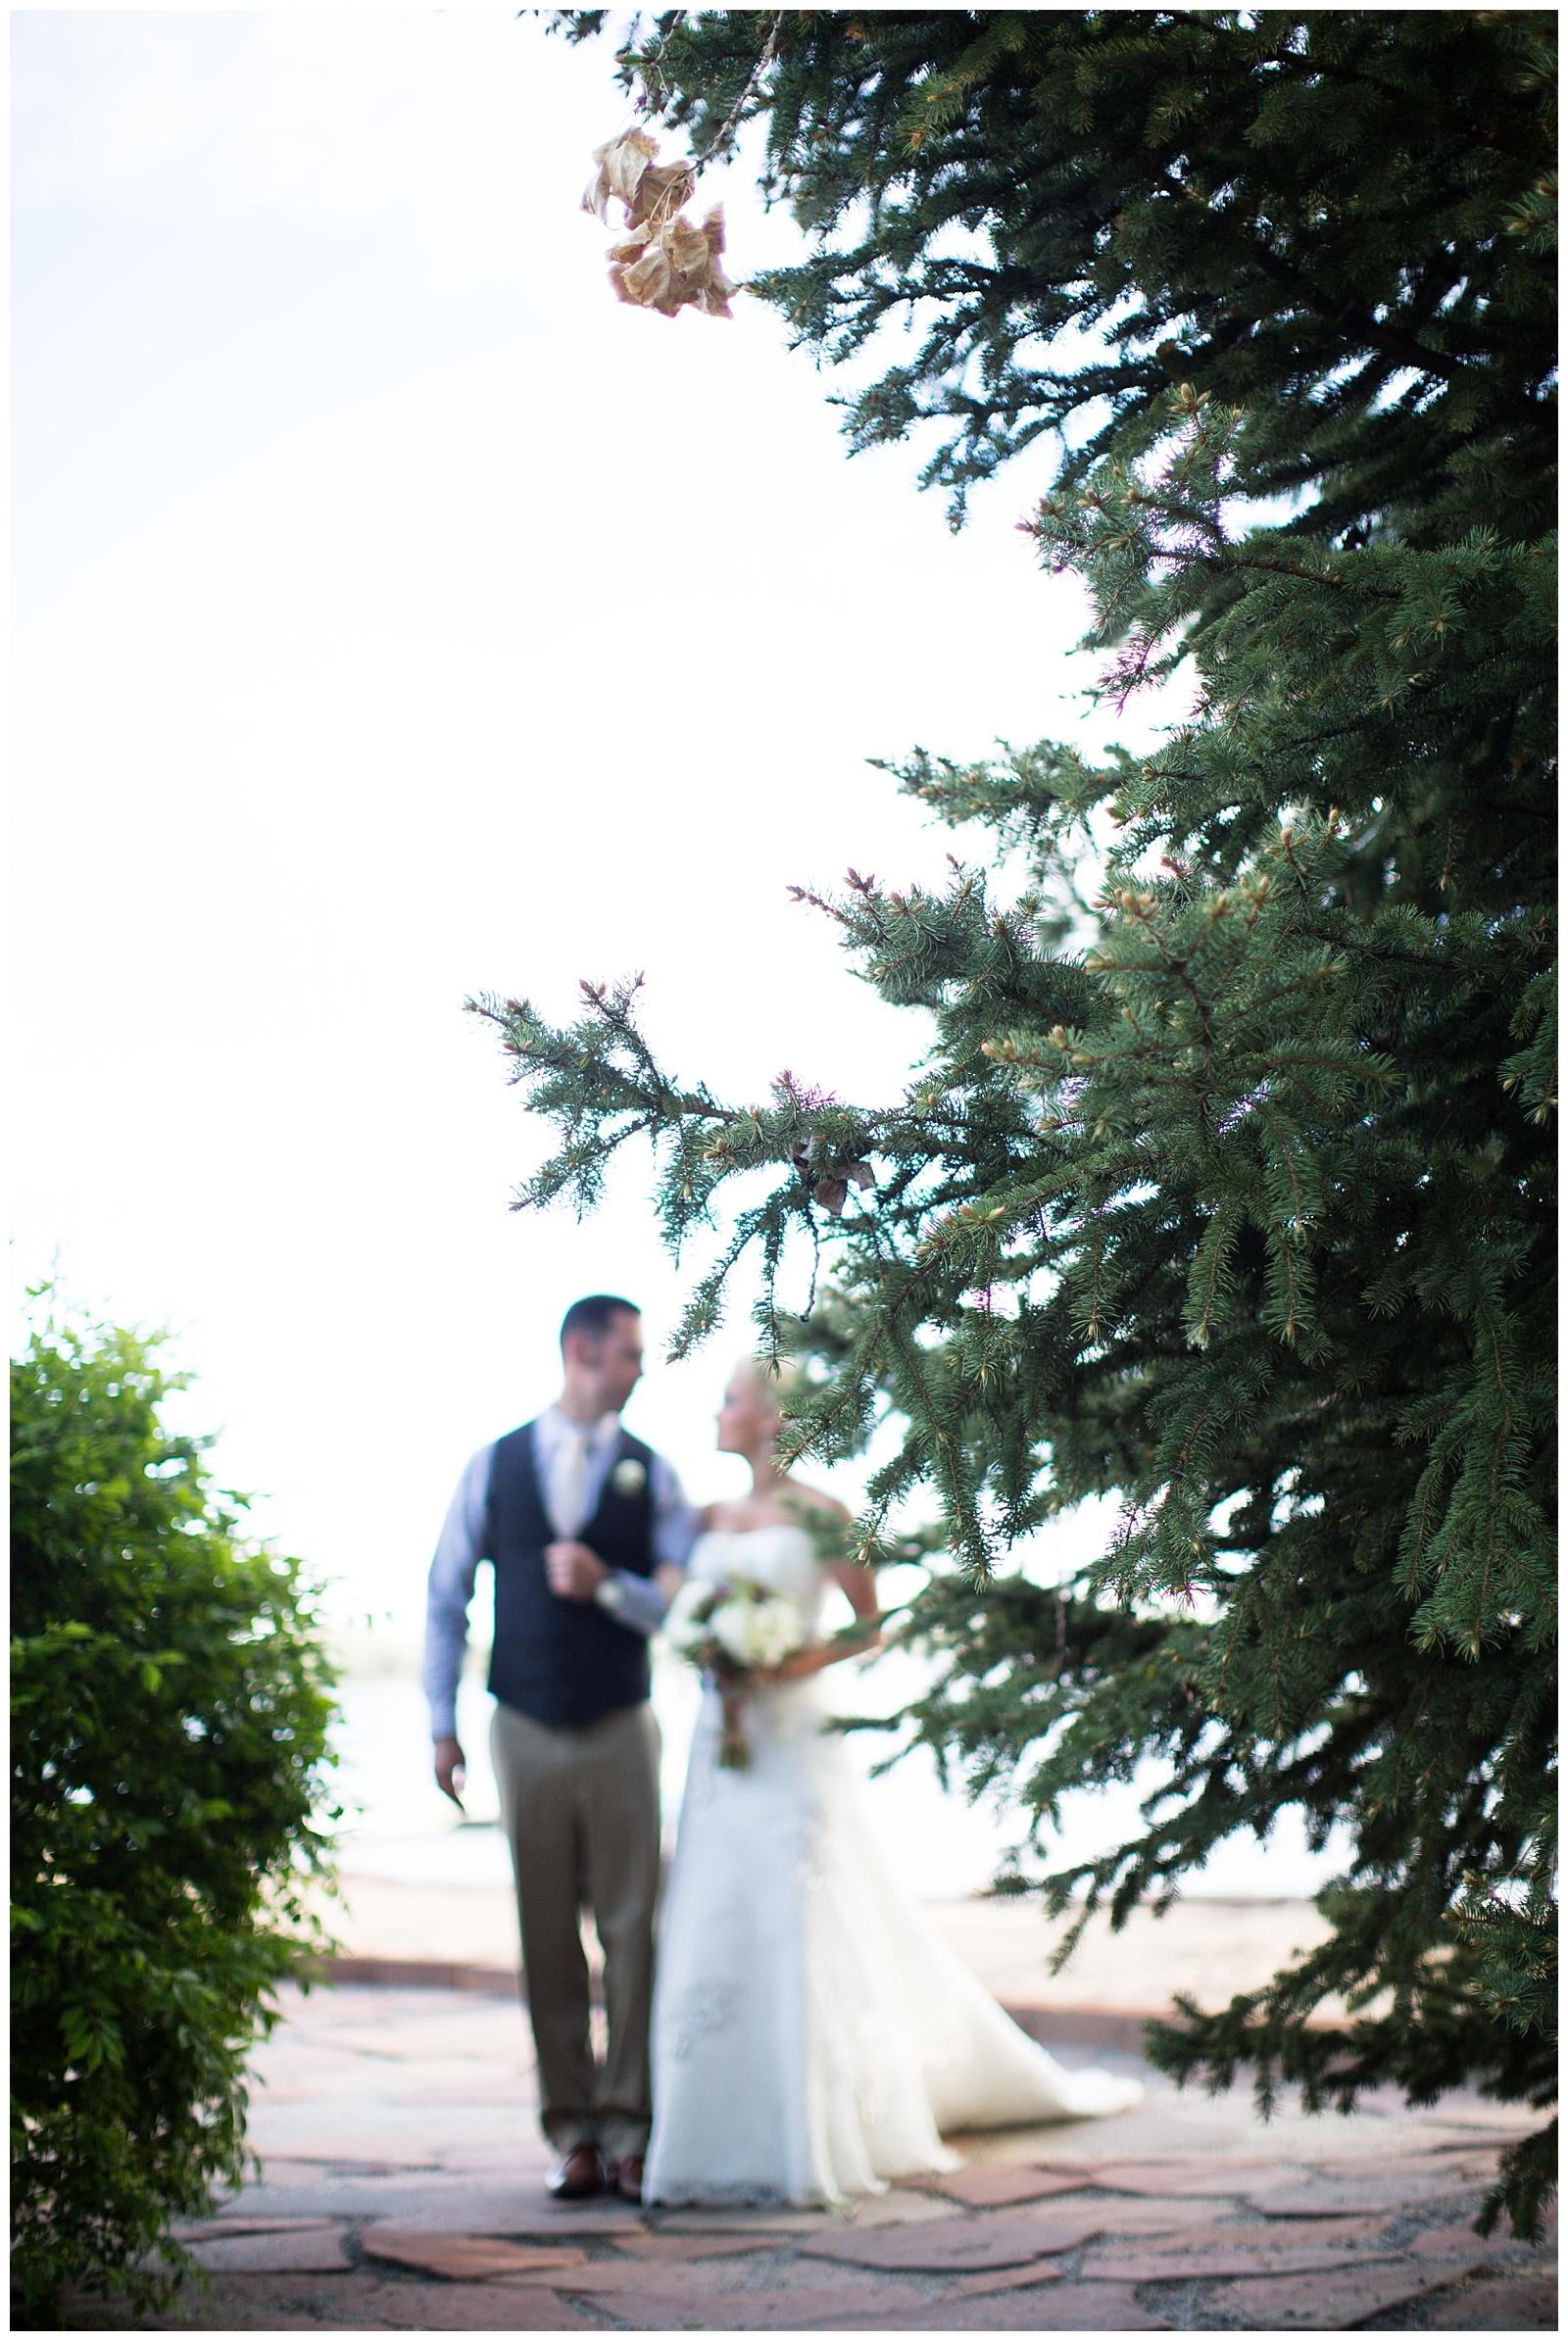 houstonweddingphotography_0236.jpg